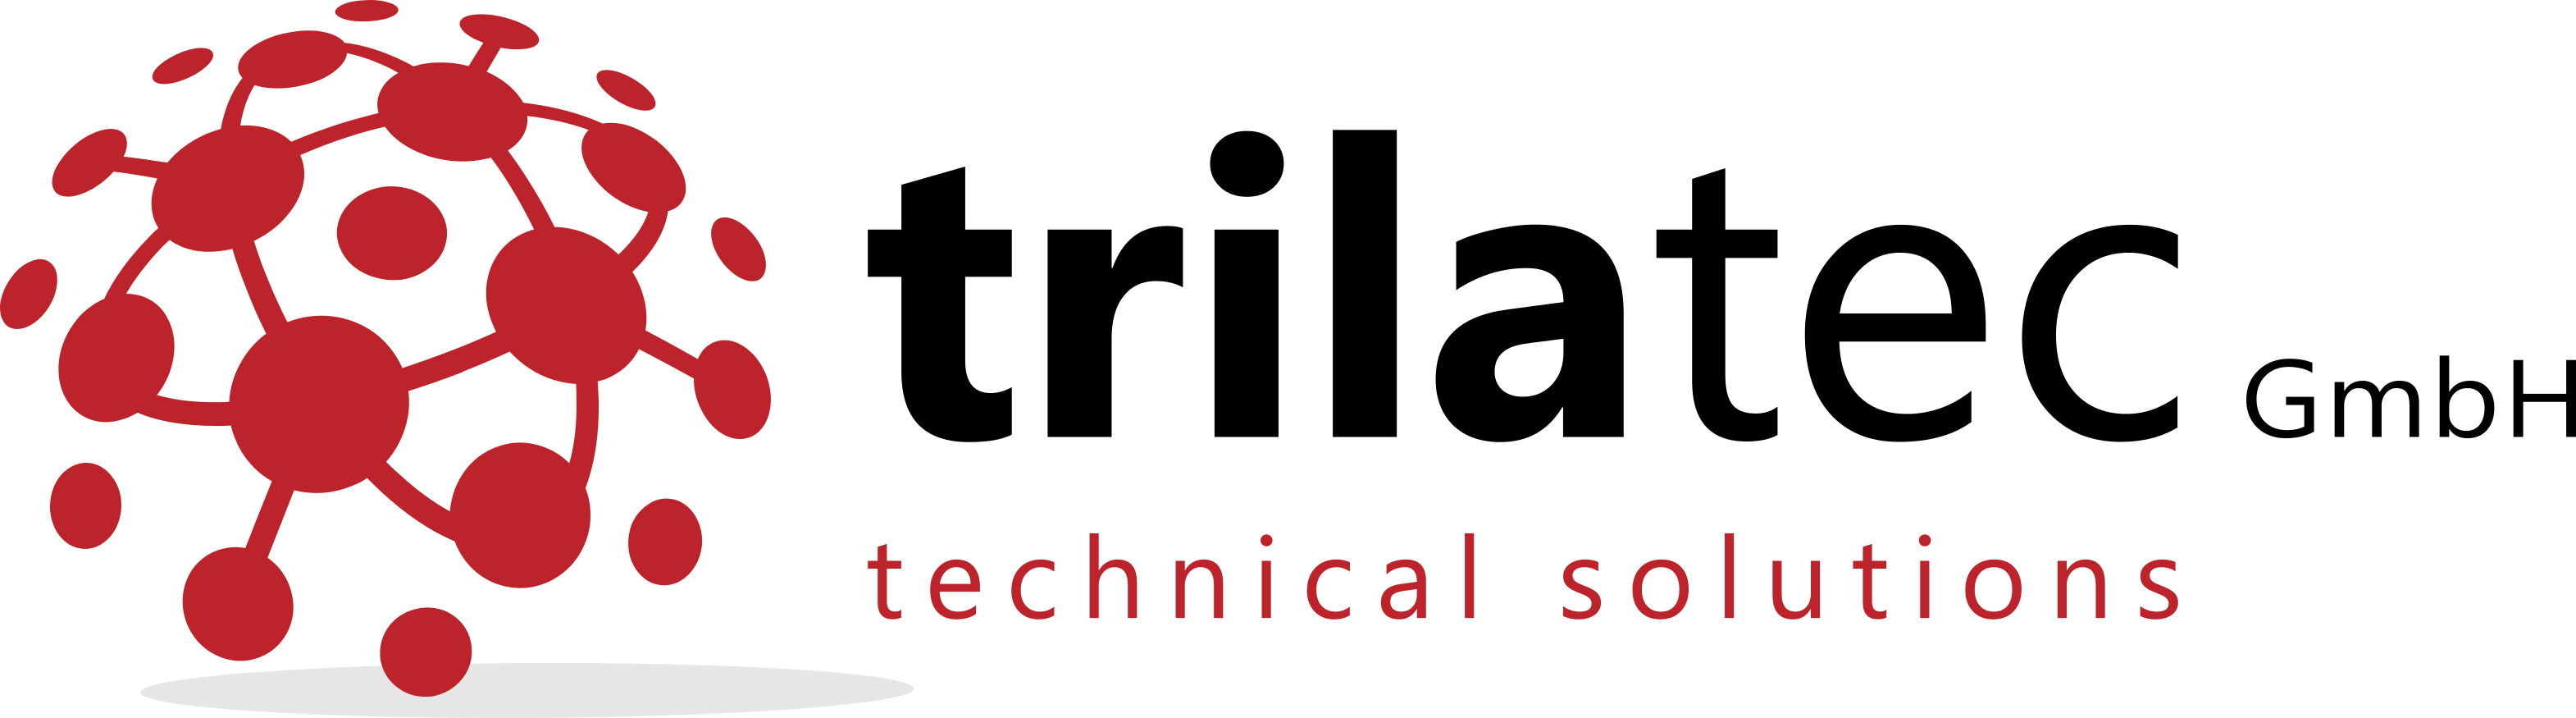 trilatec GmbH technical solutions